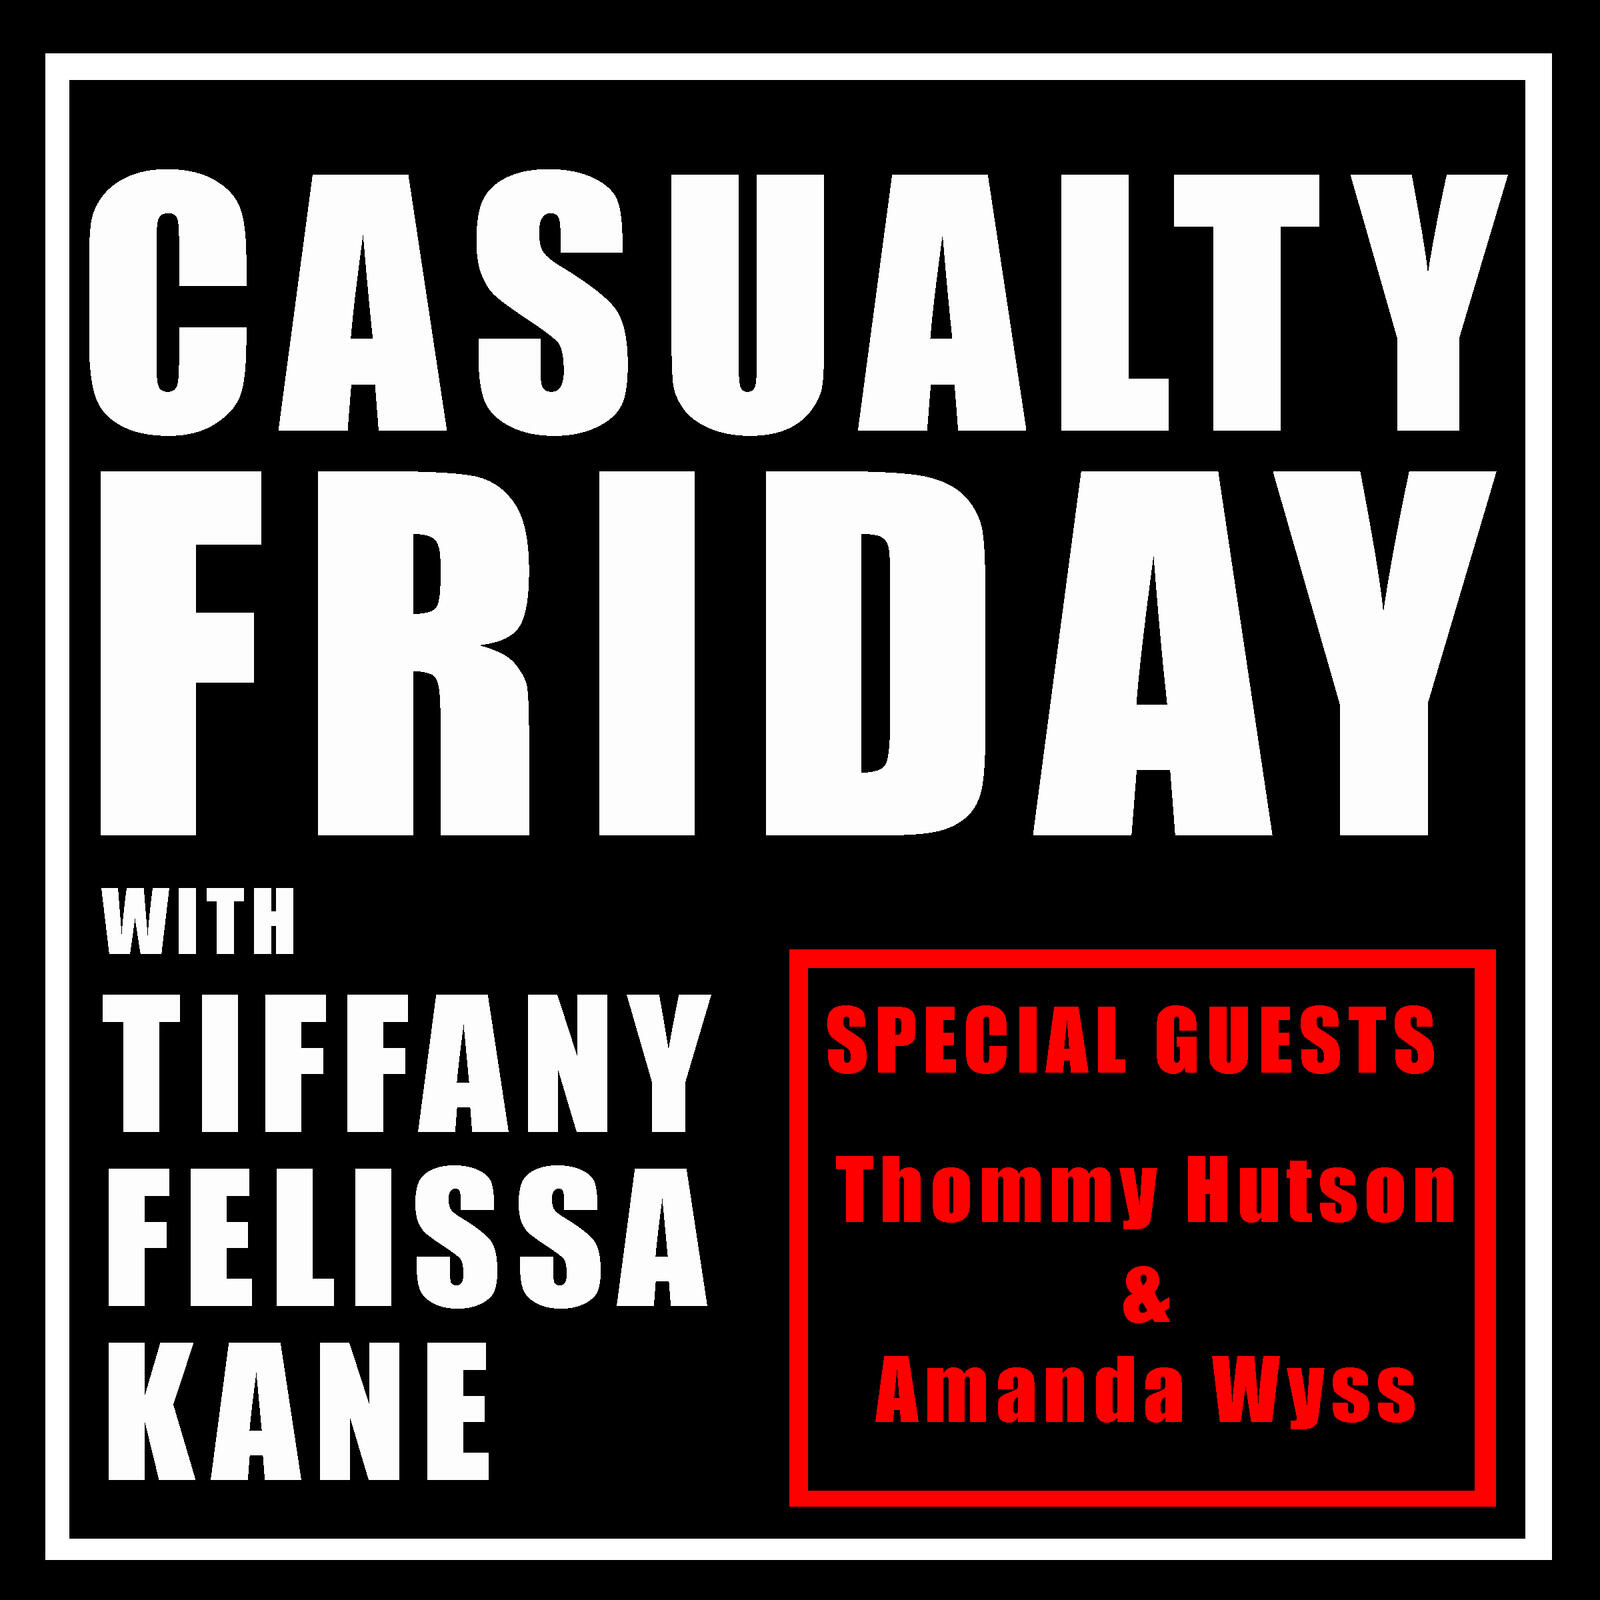 Casualty Friday with special guests Thommy Hutson & Amanda Wyss